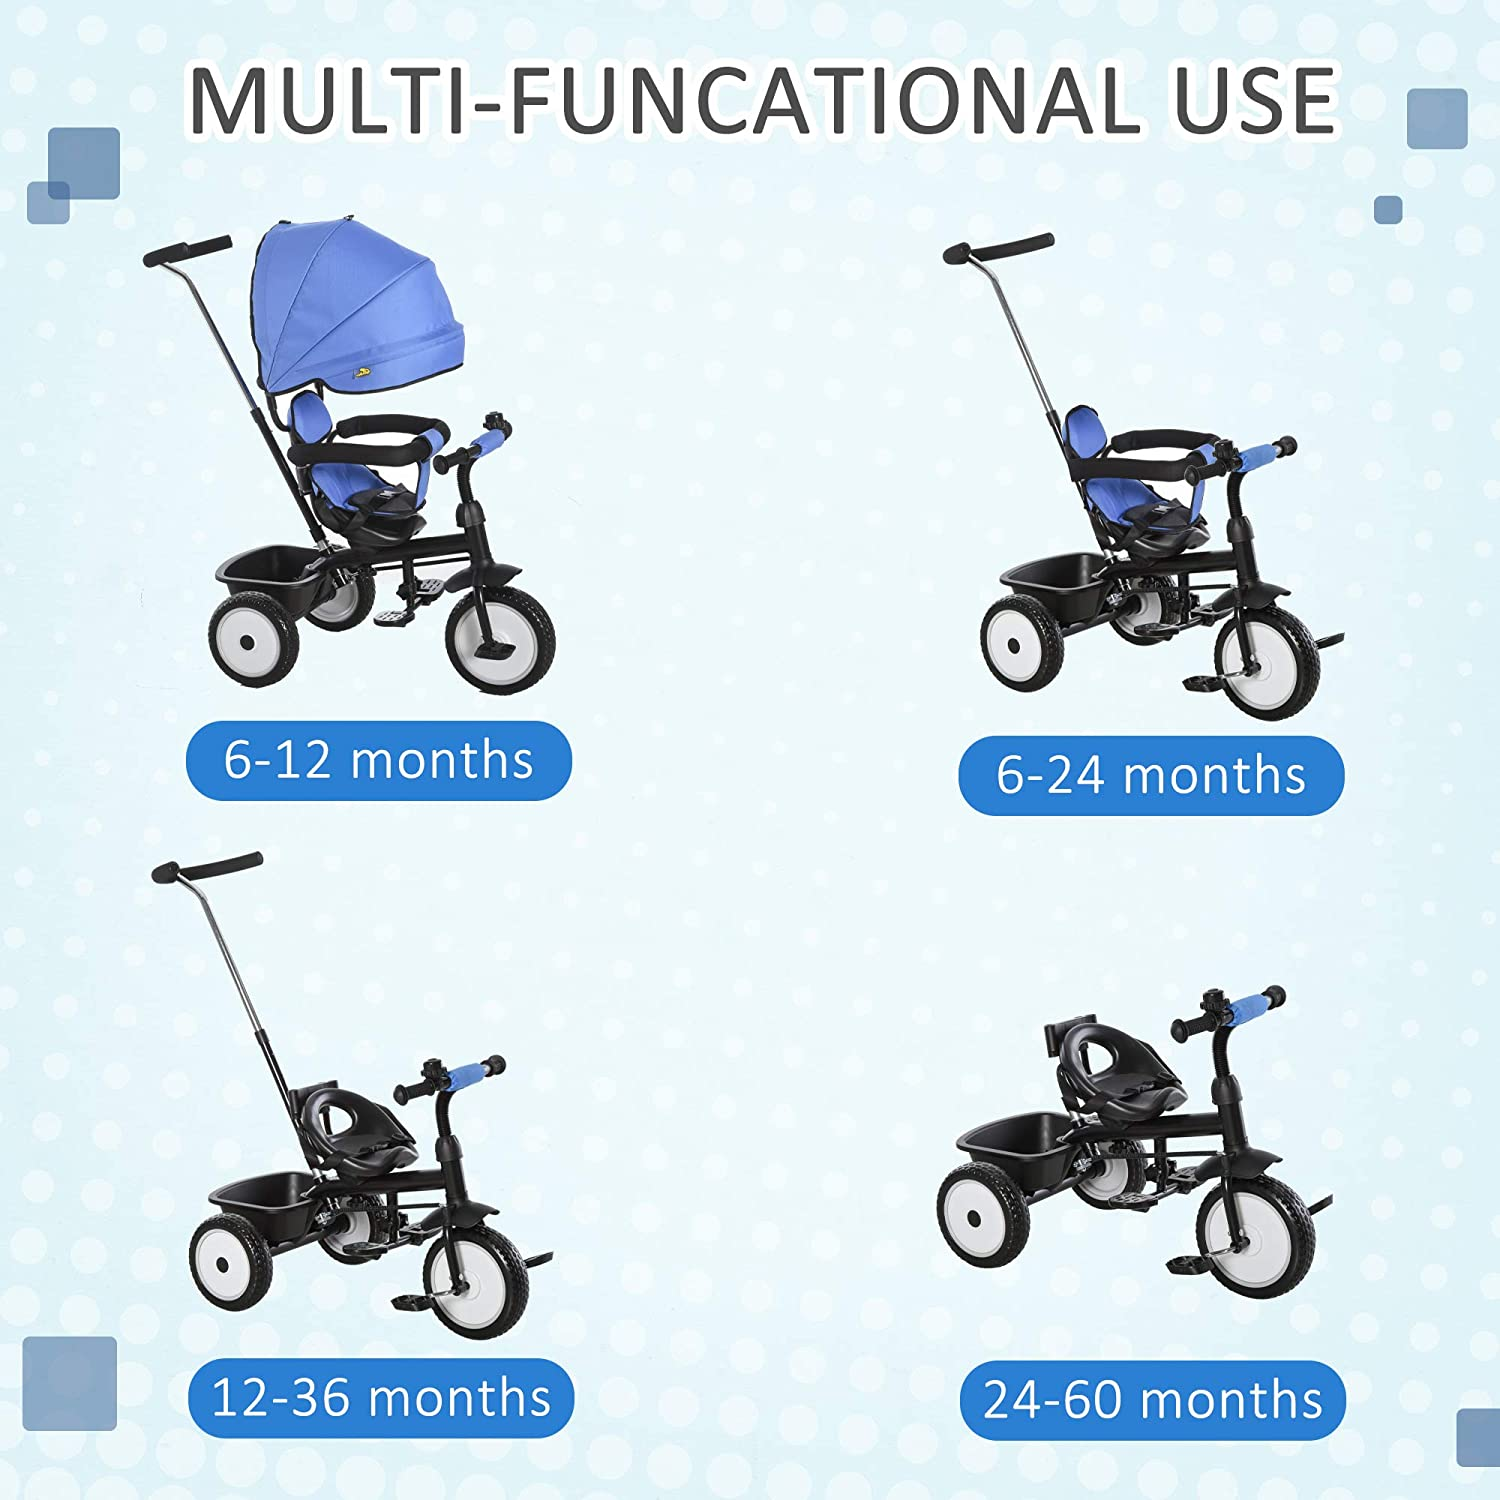 Blue Qaba Baby Tricycle 2 in 1 Stroller with Adjustable Canopy Detachable Guardrail Safety Belt for Age 6-60 Months